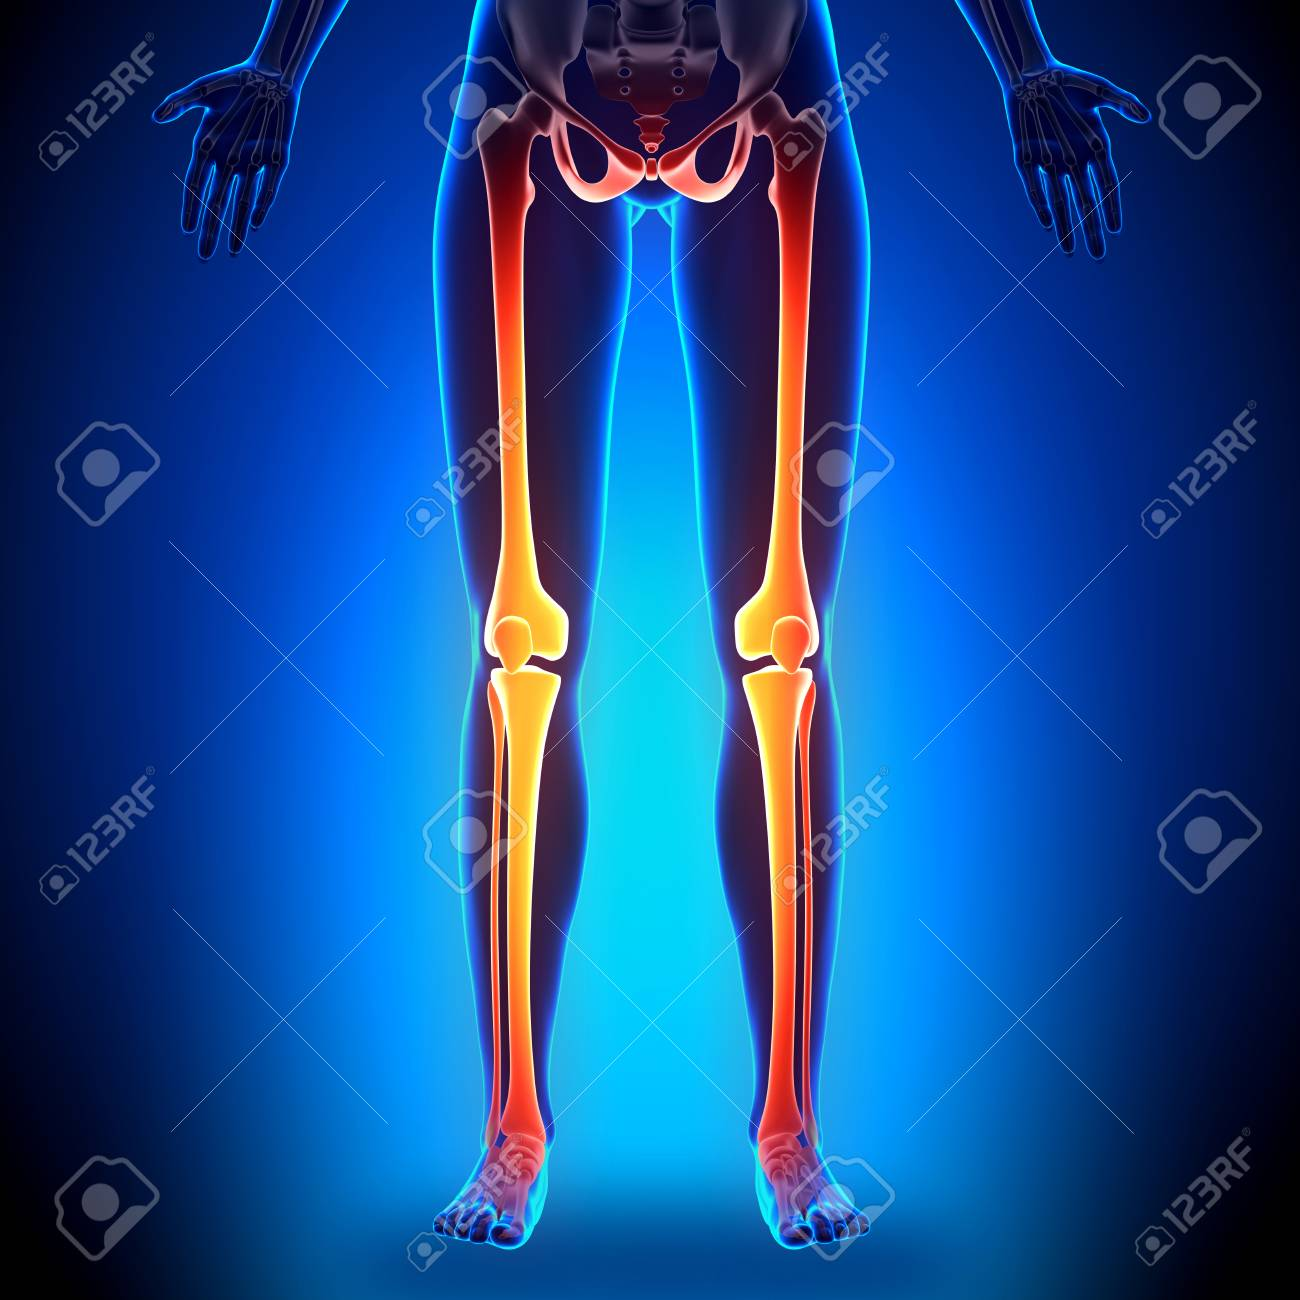 Female Legs - Anatomy Bones Stock Photo, Picture And Royalty Free ...